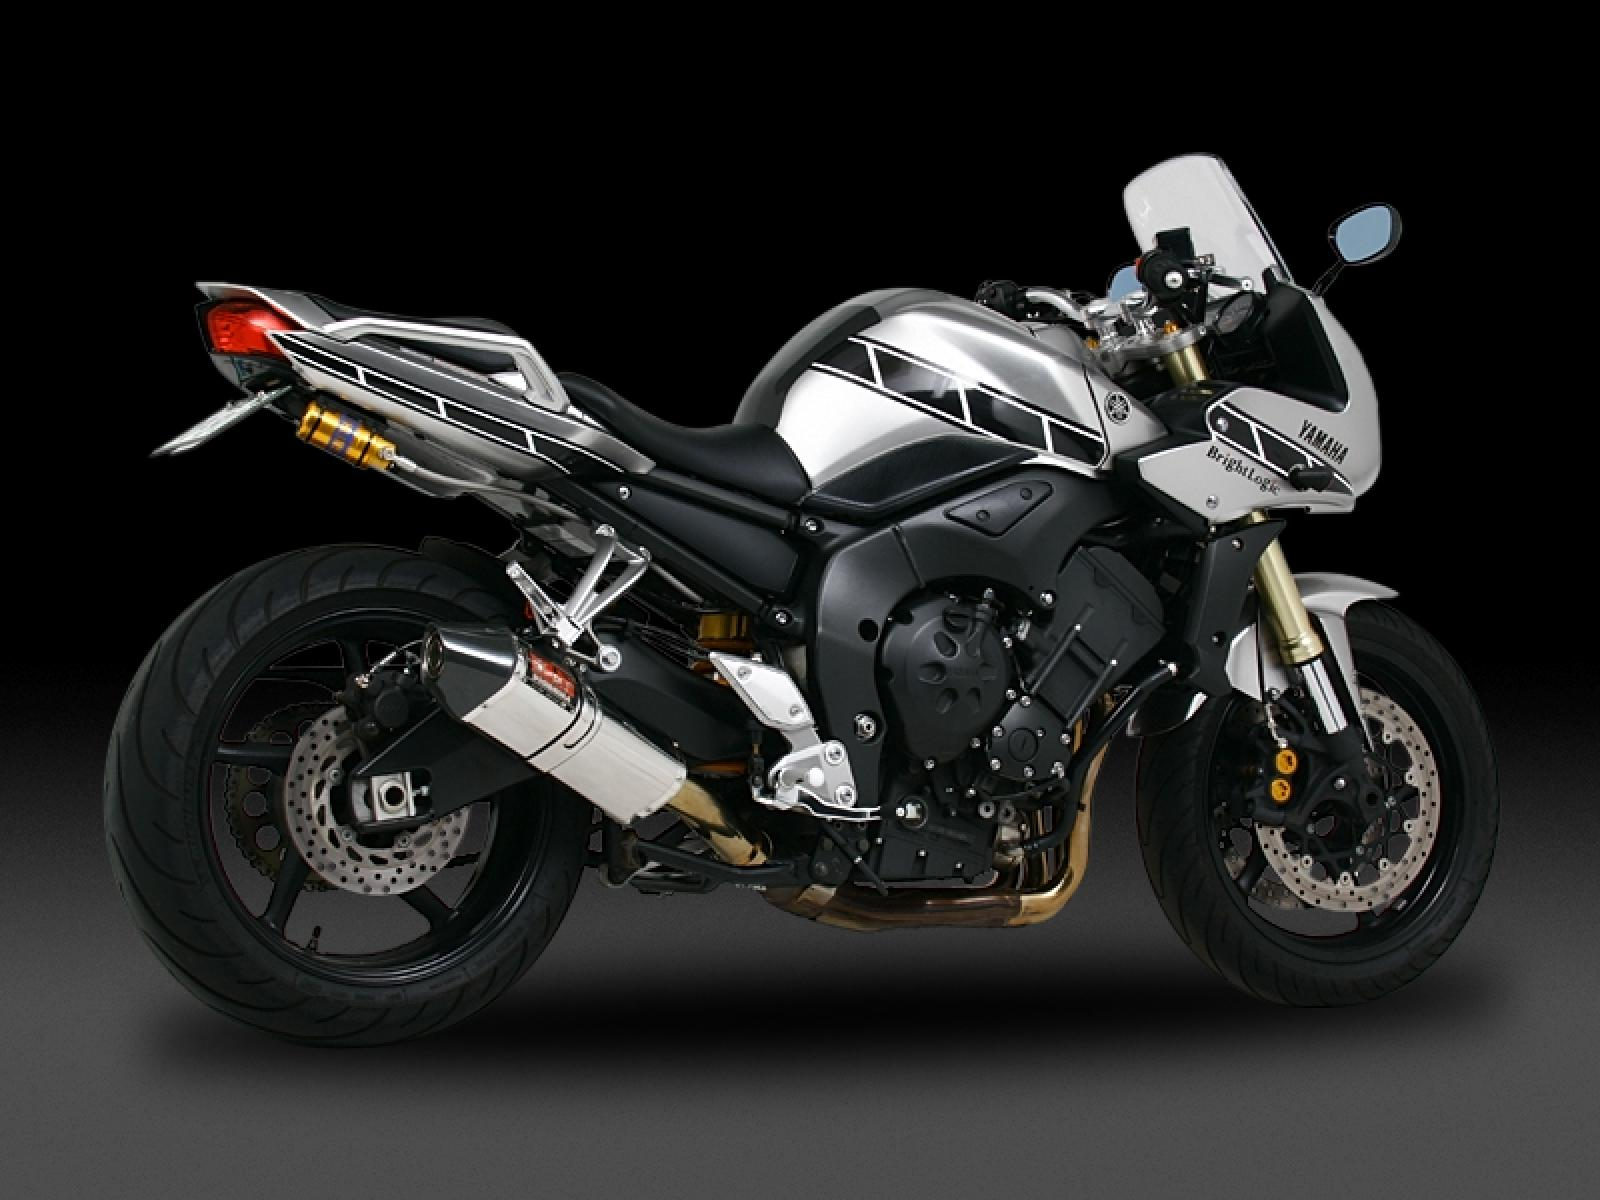 yamaha yamaha fz1 fazer moto zombdrive com. Black Bedroom Furniture Sets. Home Design Ideas